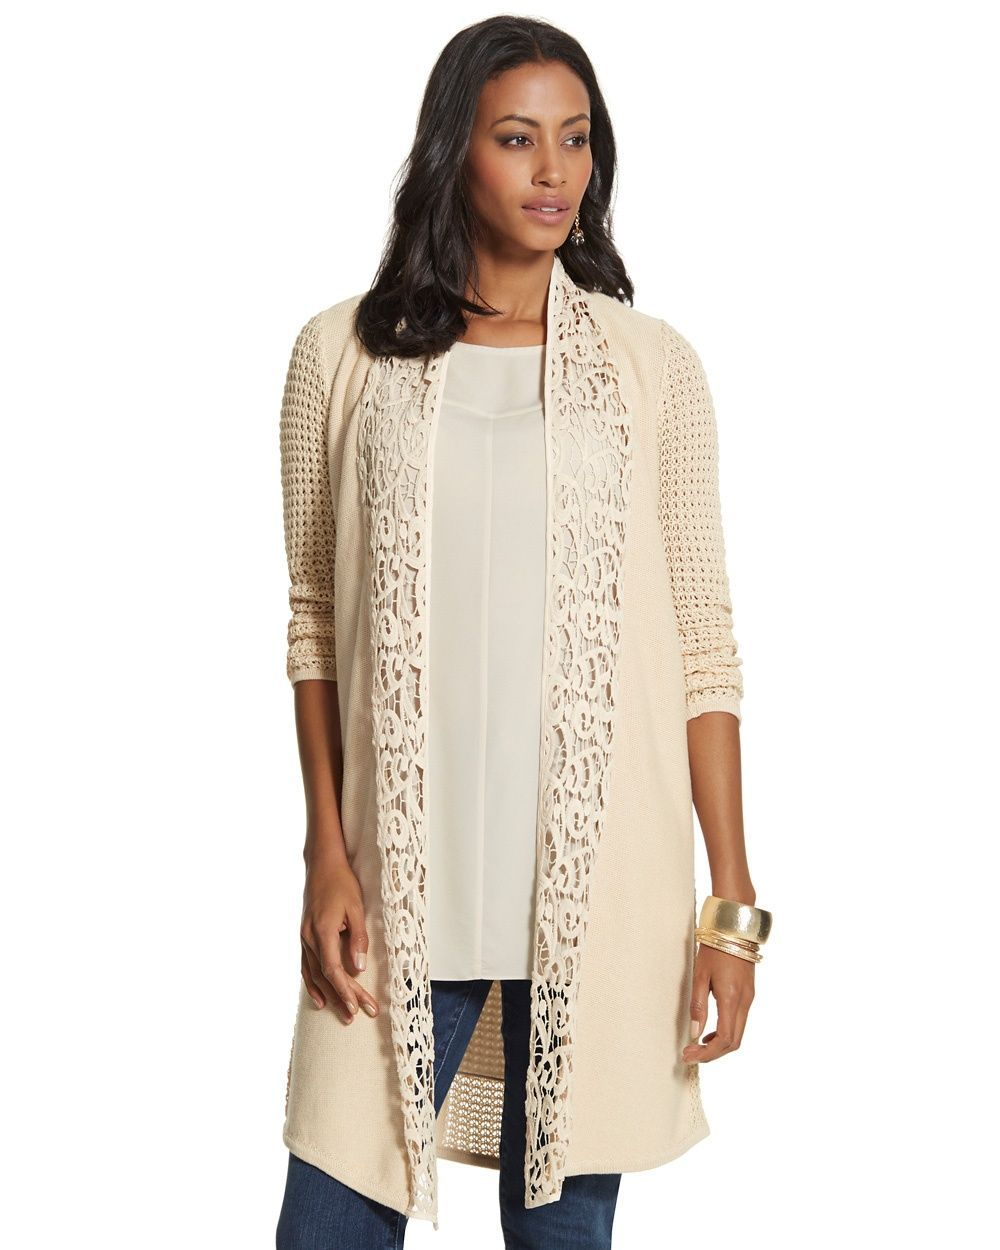 Chico's Women's Leslie Lace Cardigan | Cardigans For Men | Pinterest